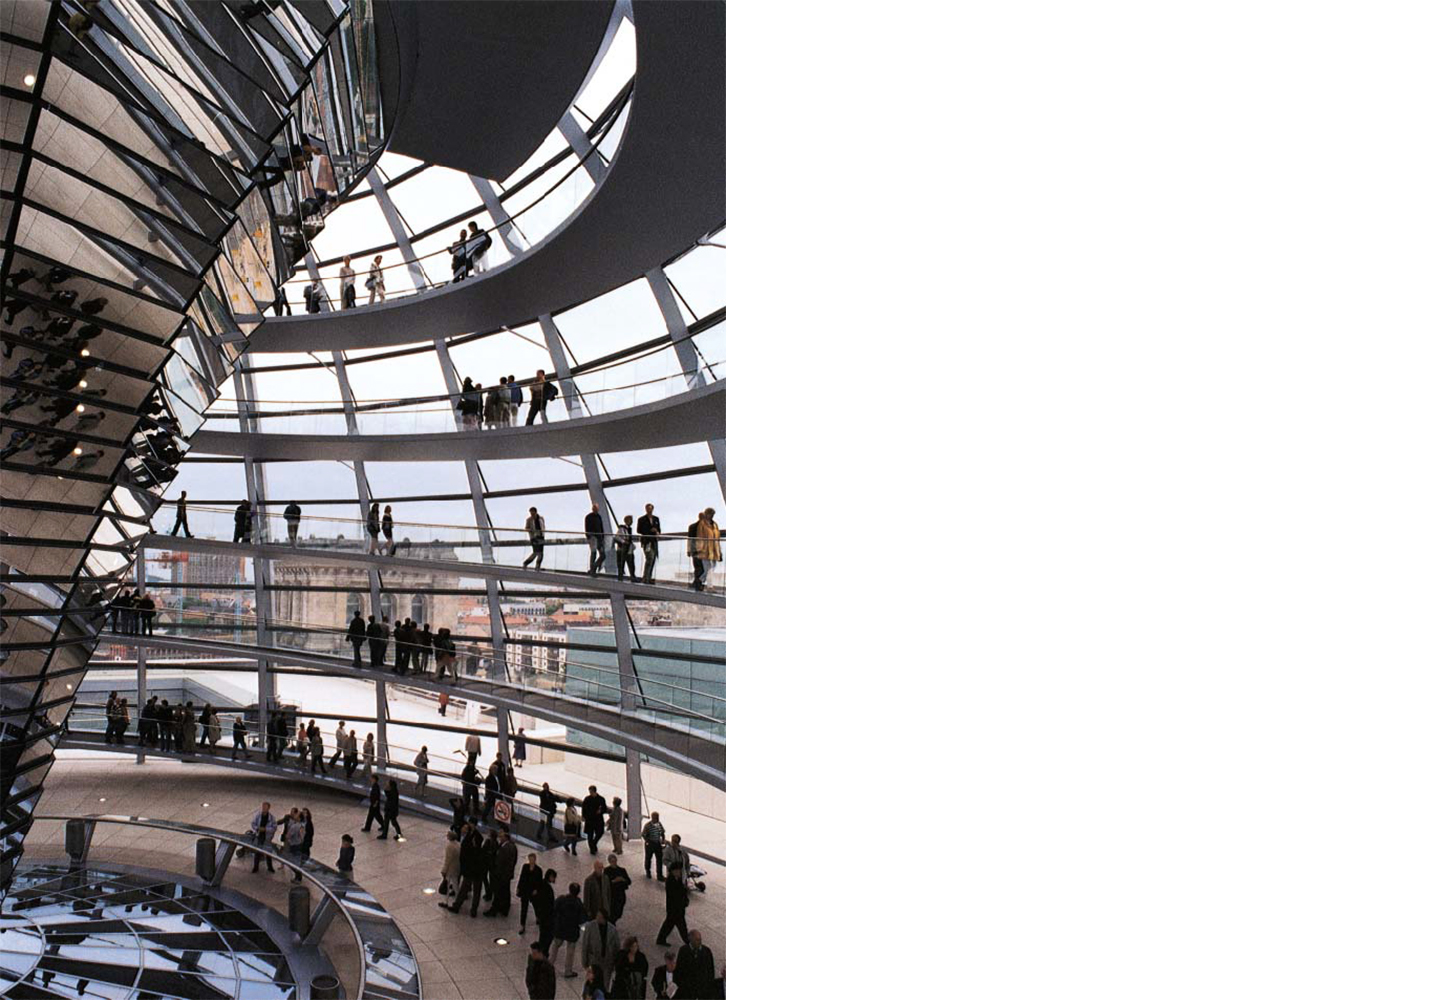 The Reichstag New German Parliament